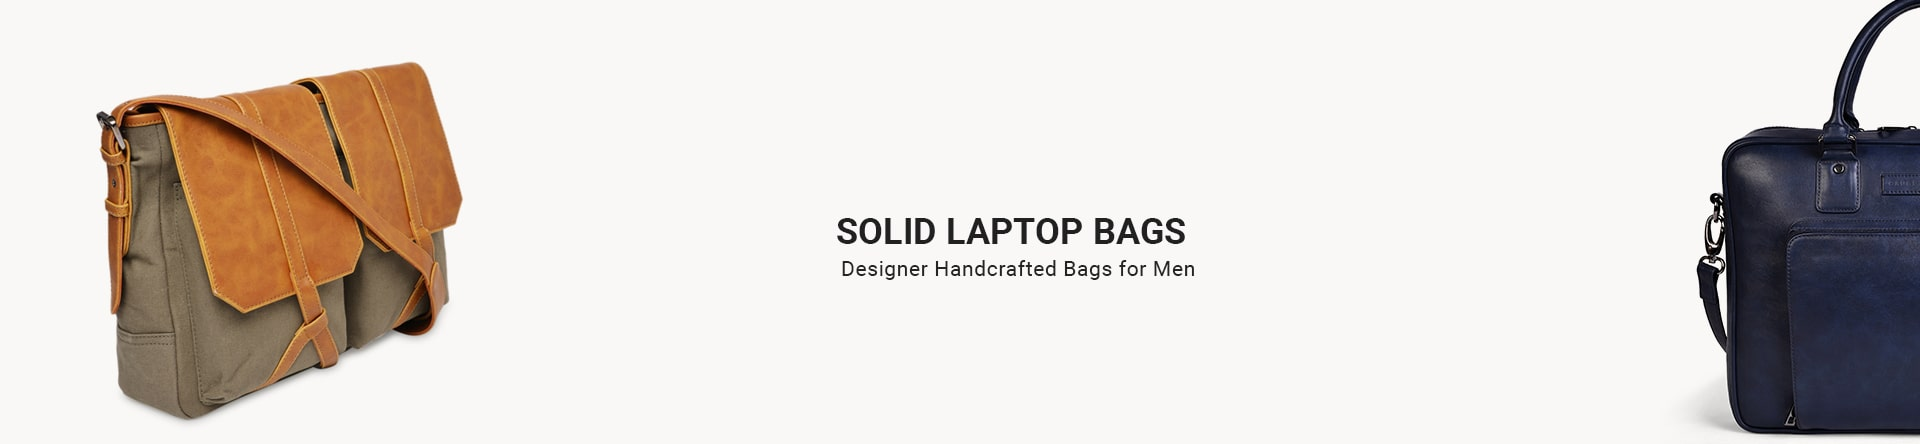 solid-laptop-bags